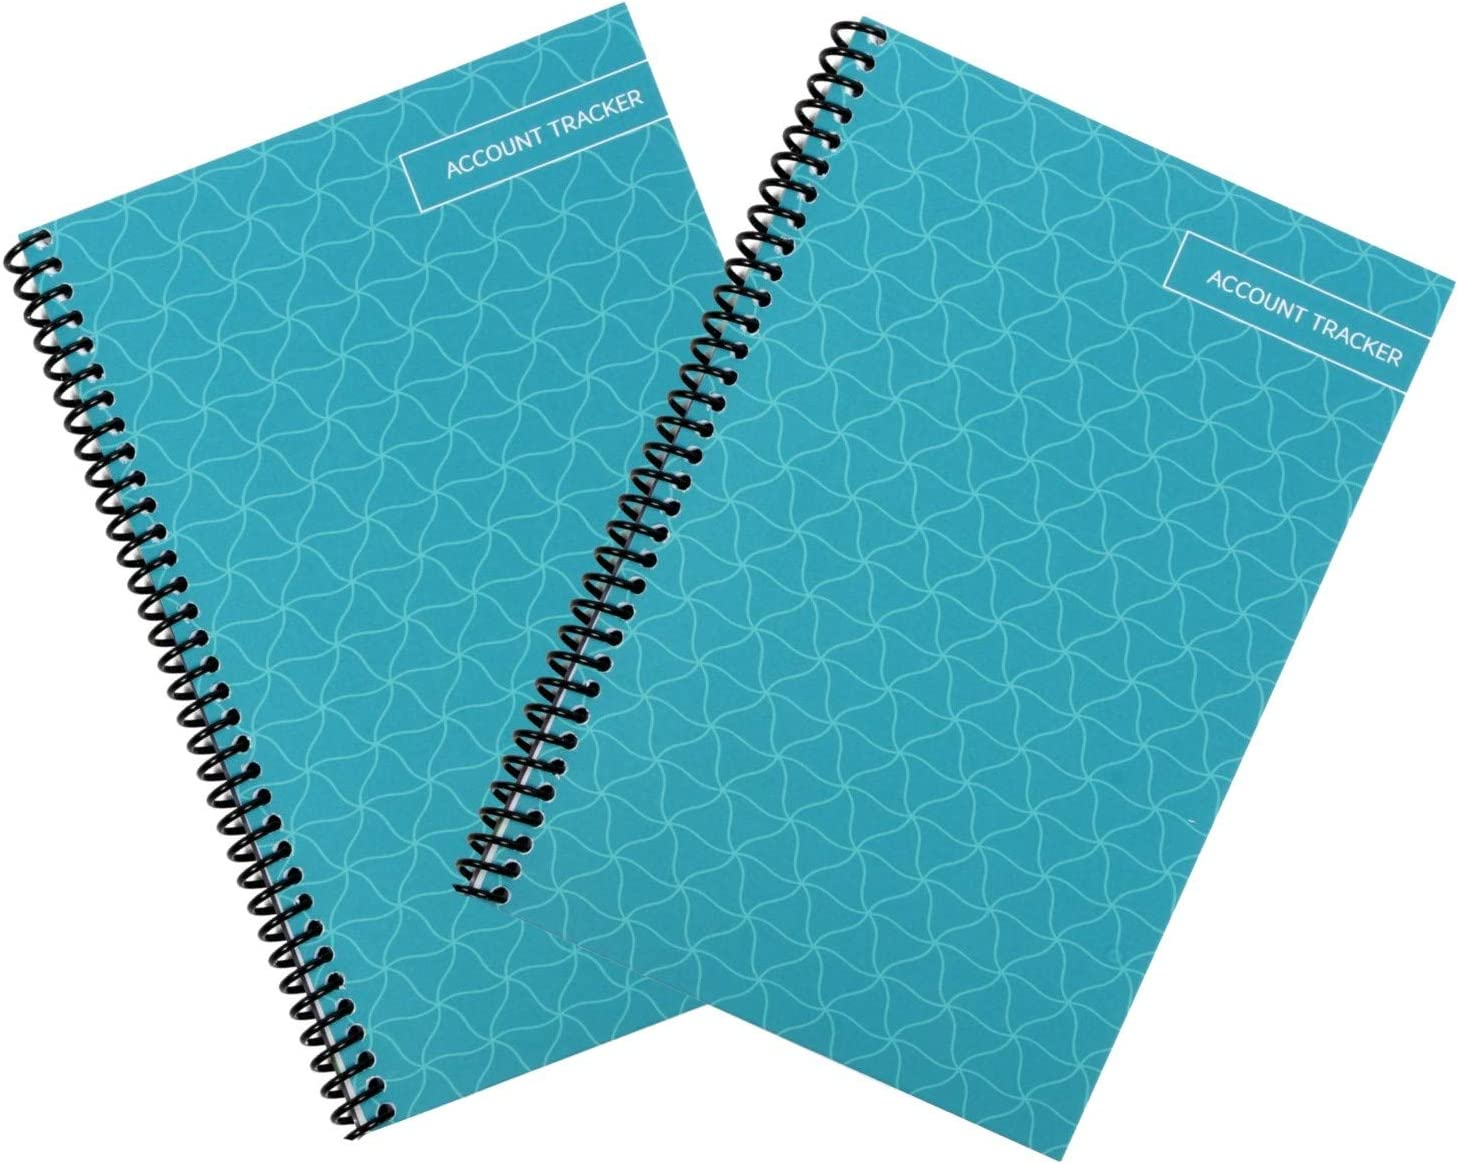 Superior Check and Debit Card Register - Simple Account Tracker - Teal - 2-Pack